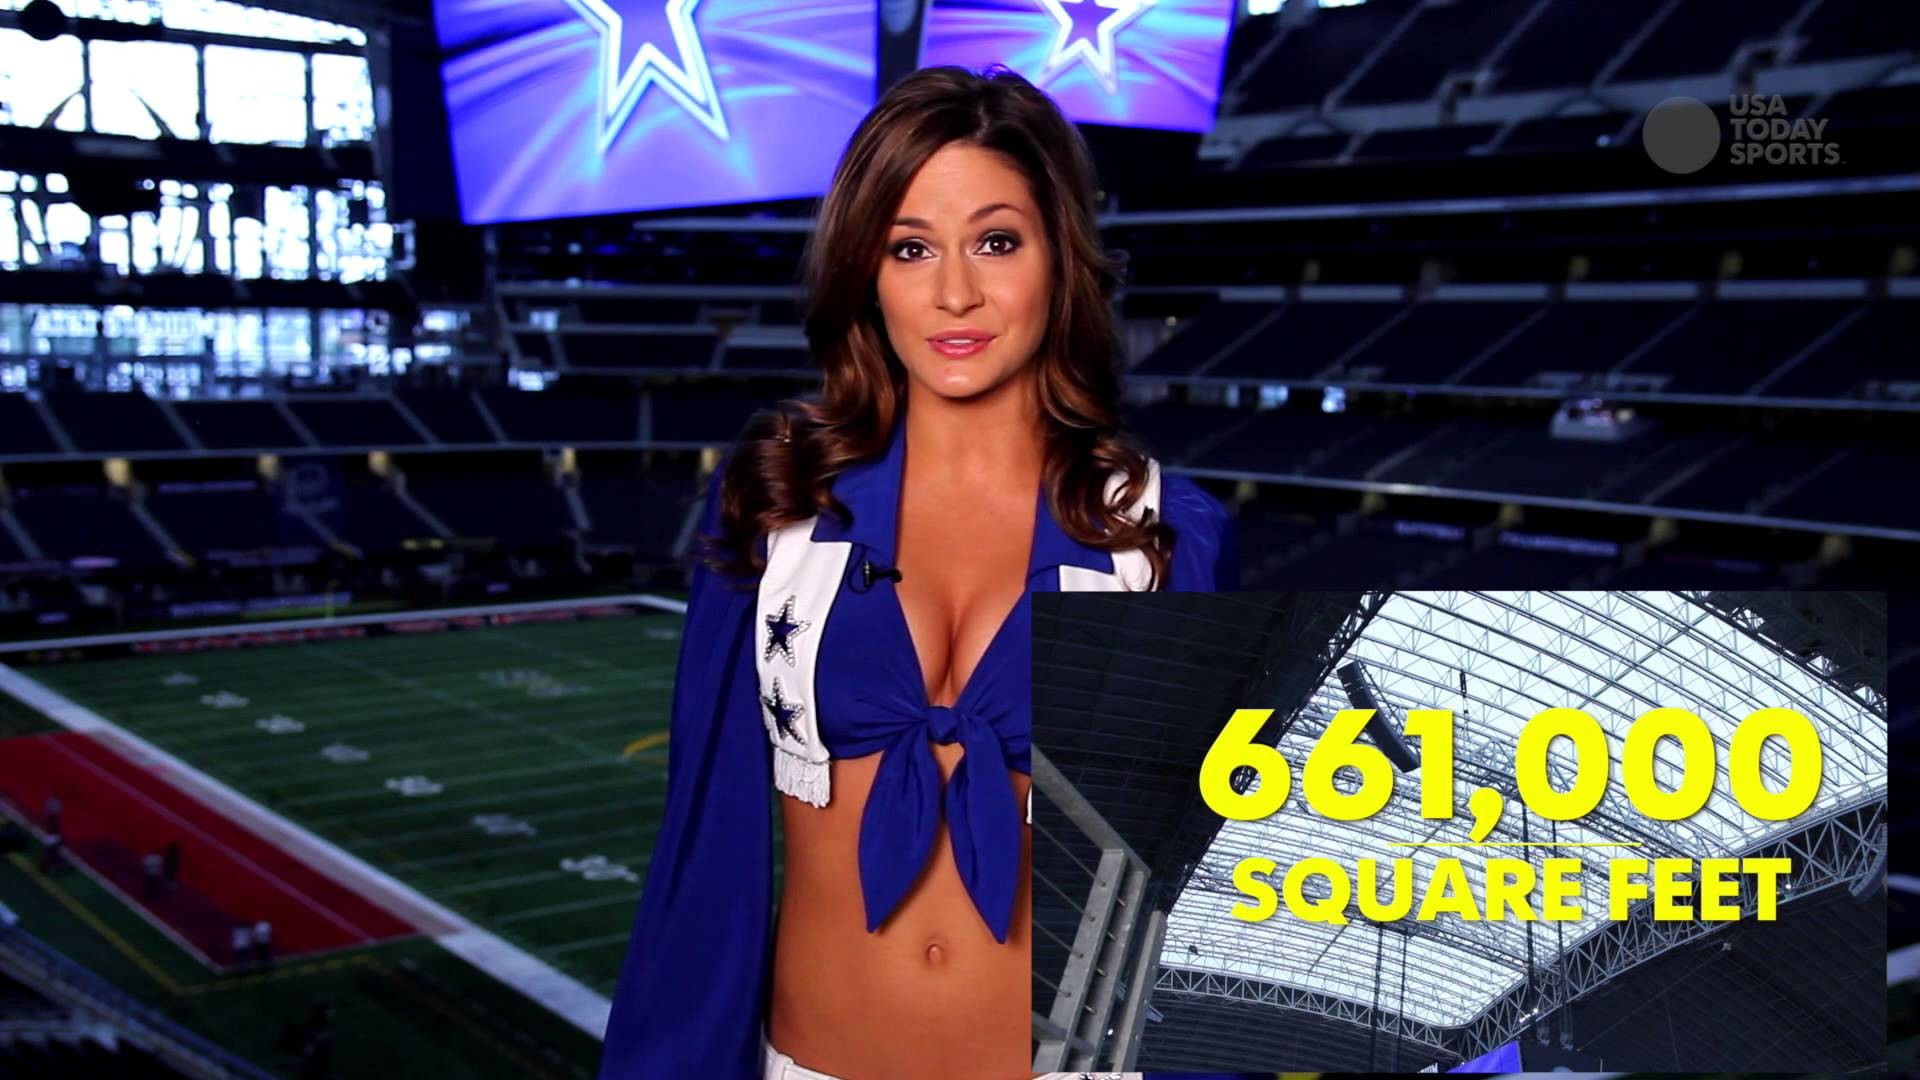 The Dallas Cowboys cheerleaders explain the craziest facts about AT&T  Stadium – YouTube